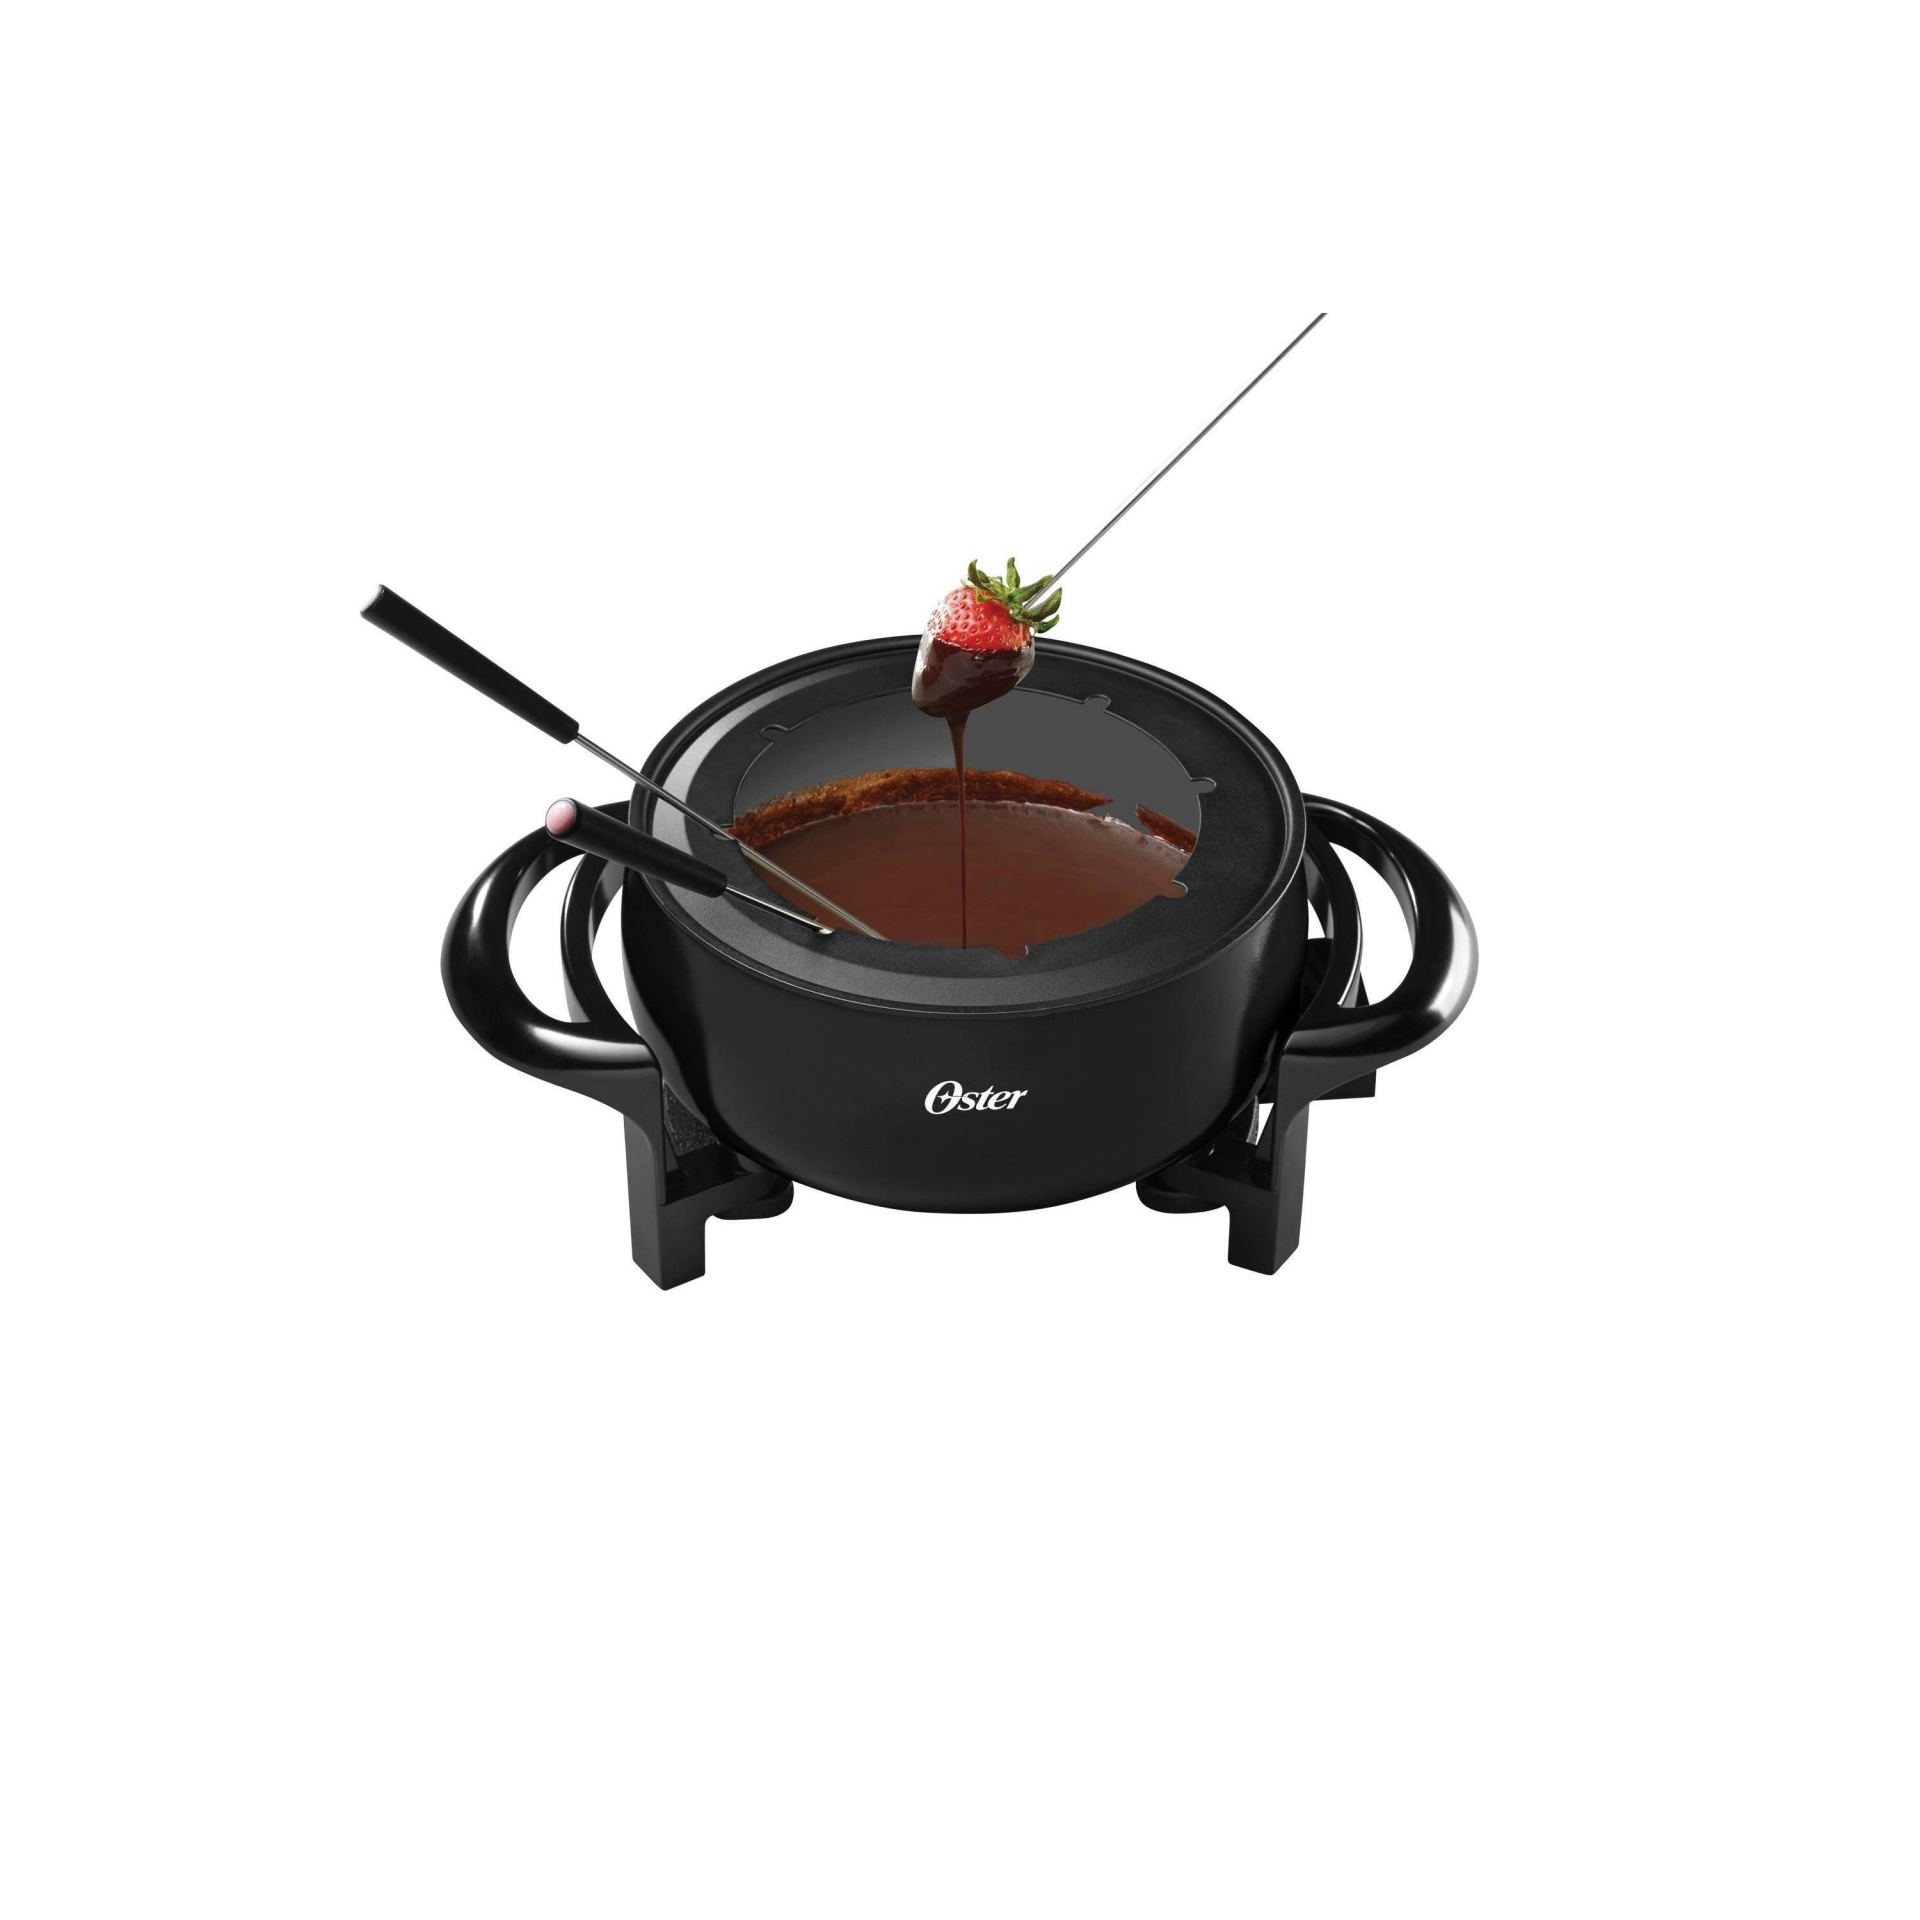 slide 1 of 3, Oster Duraceramic Fondue Pot - Red,